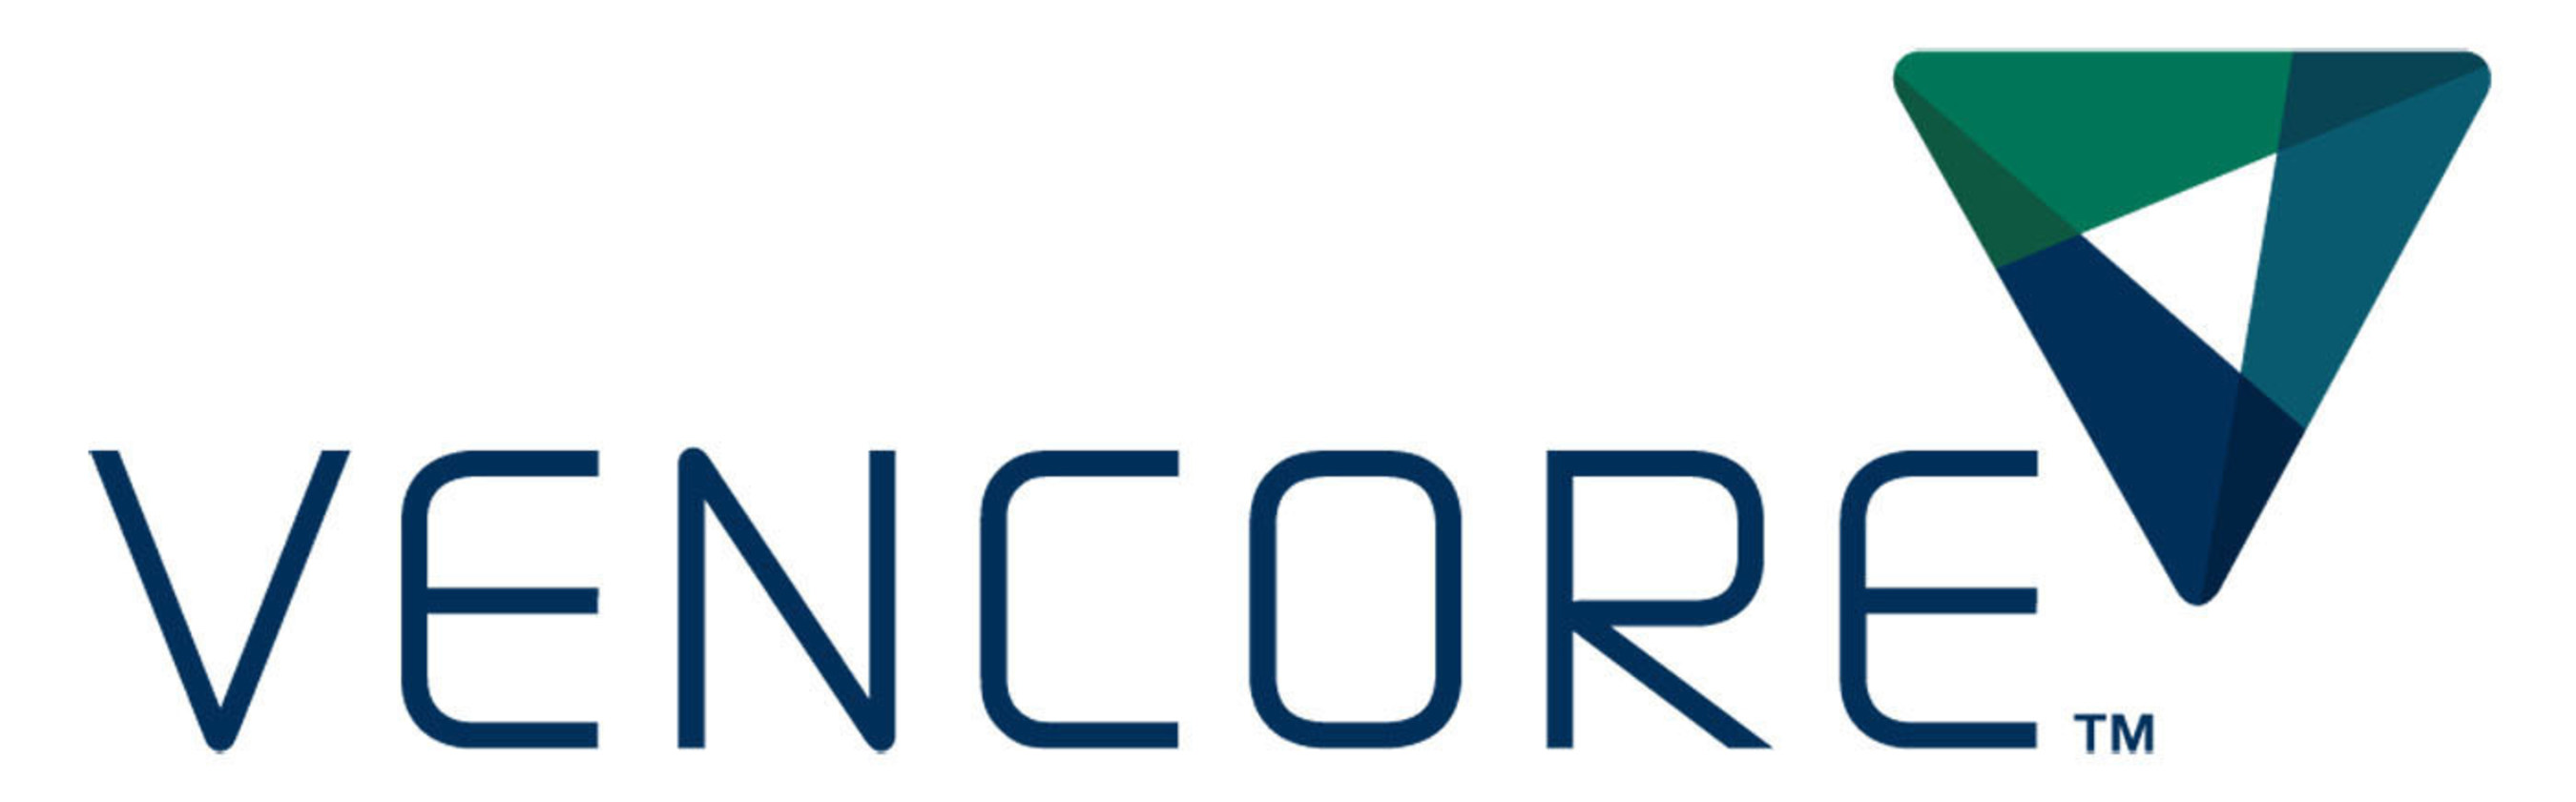 Vencore Selected To Provide Cyberspace Science, Research, Engineering And Technology Integration To The United States Navy